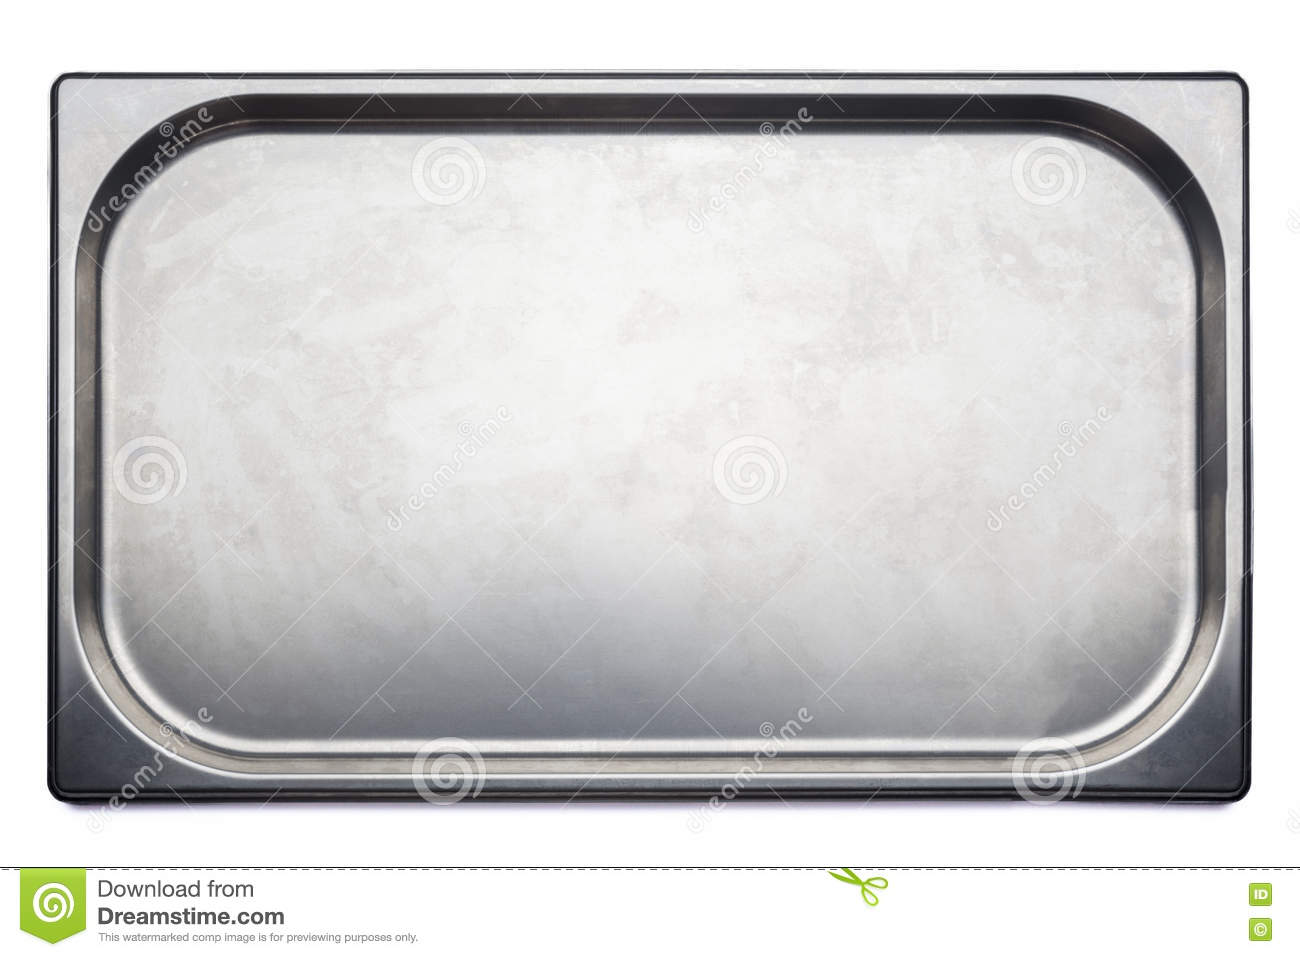 Stainless Steel Medical Tray On White Background Stock Image - Image ...